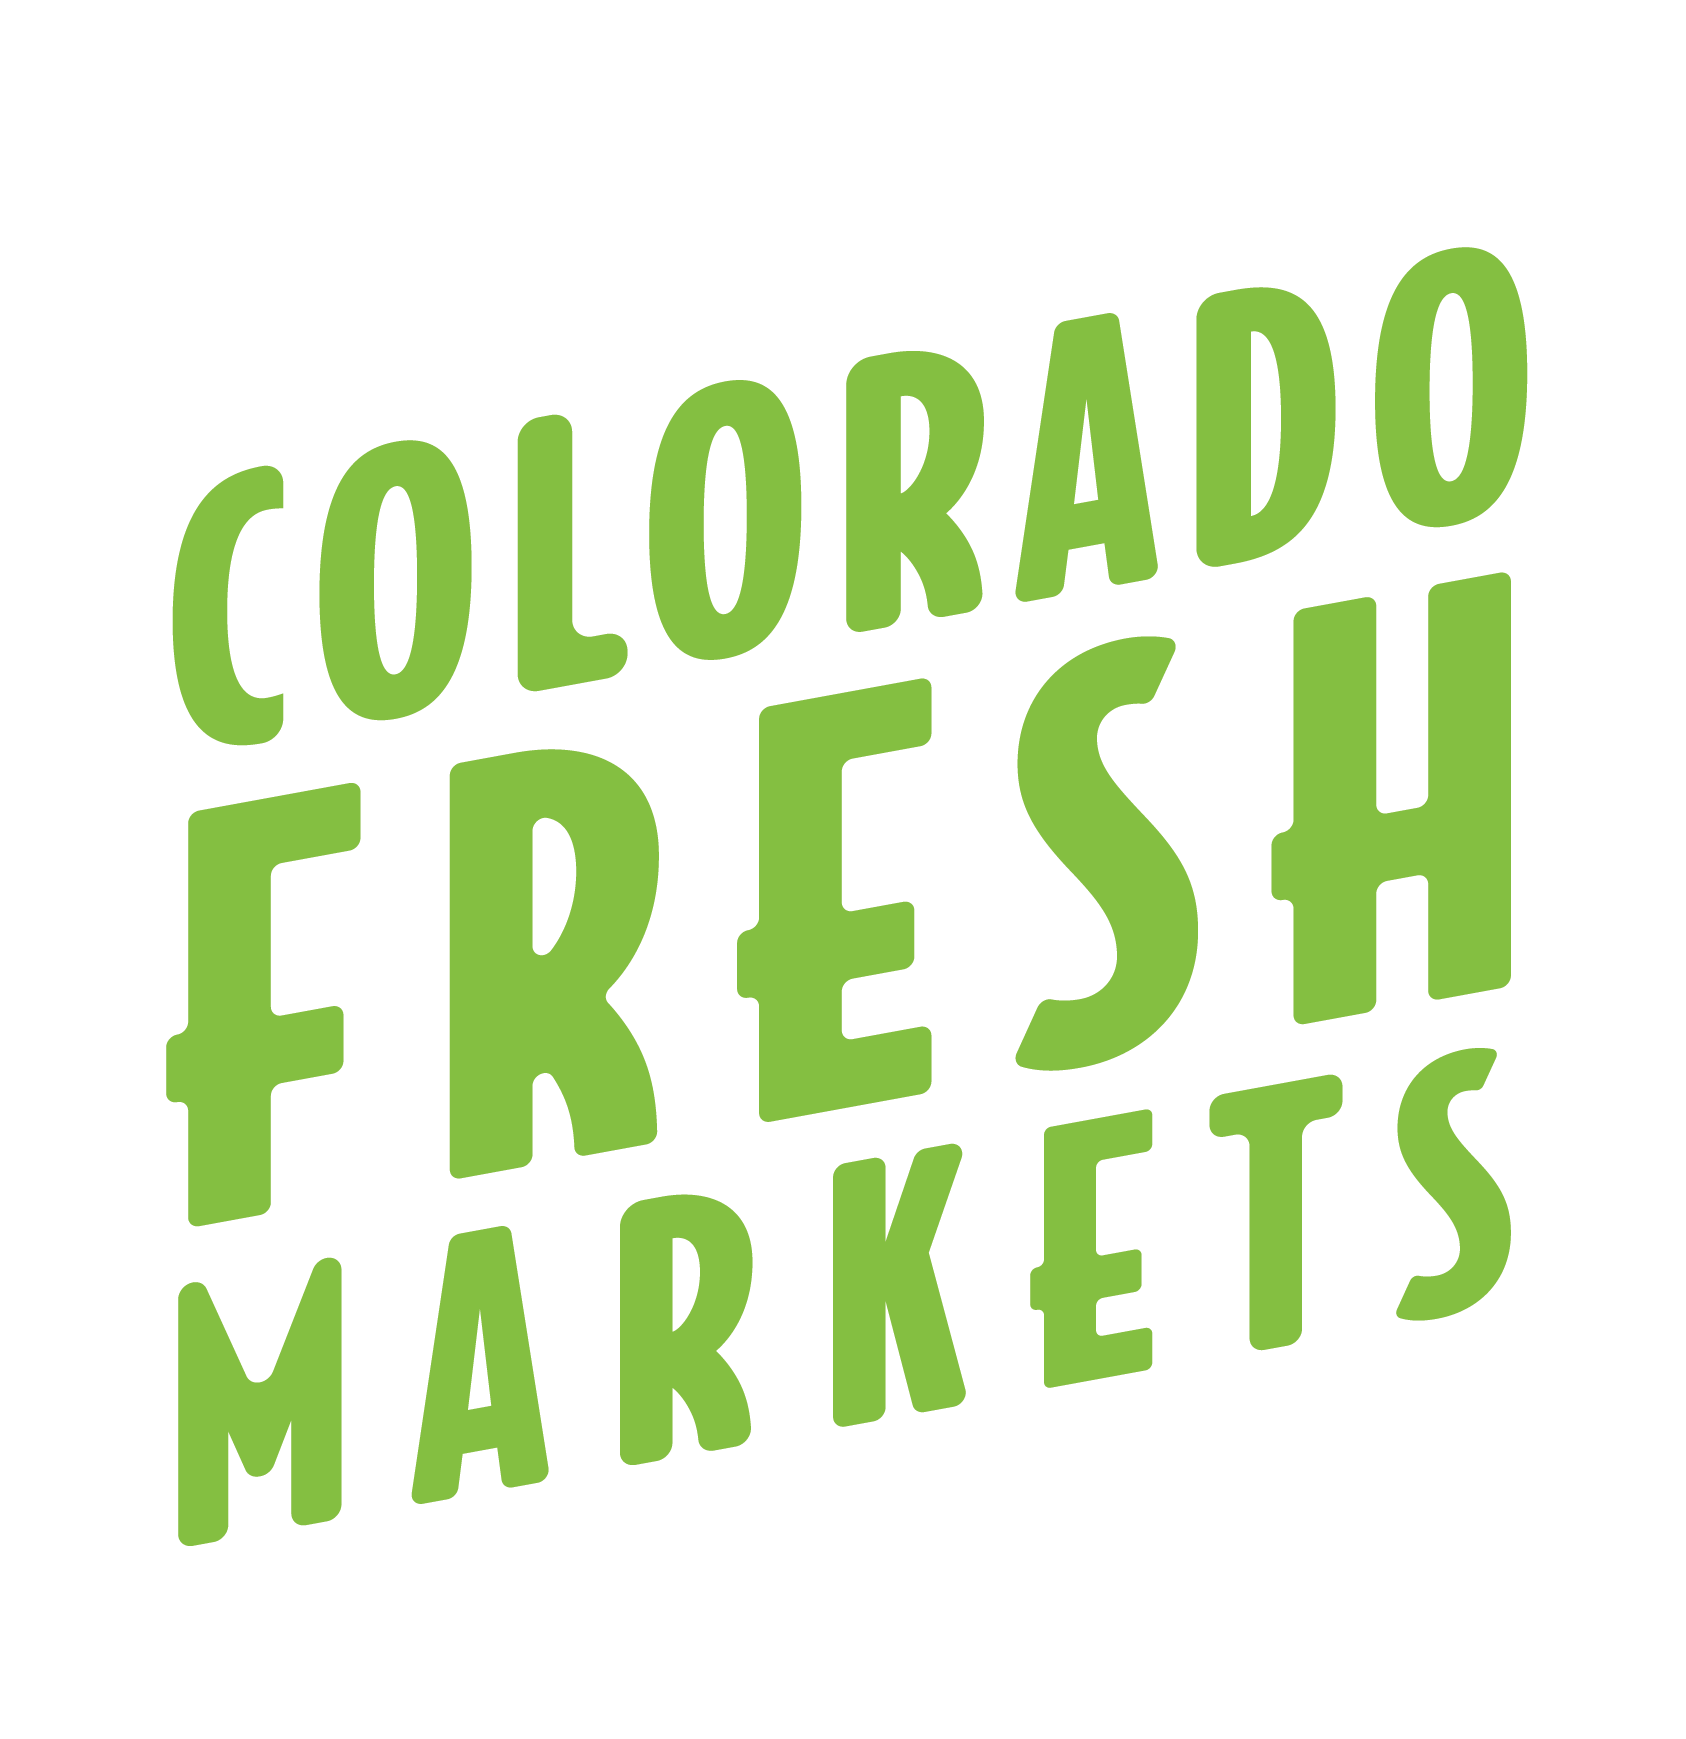 co-fresh-markets-logo_rv.png